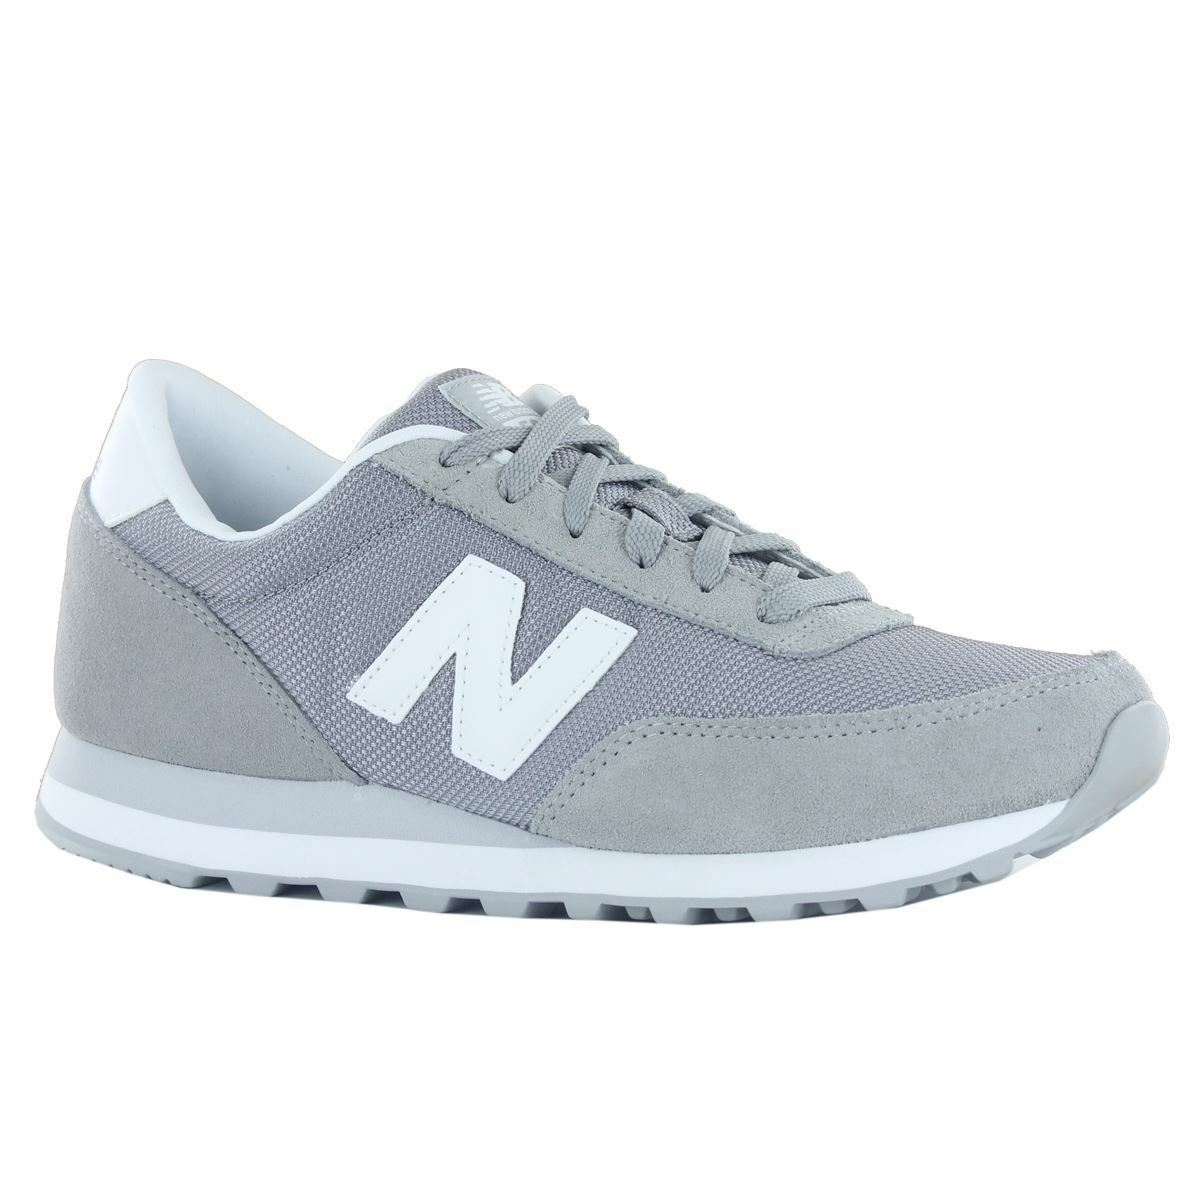 New Balance Mens Classics Traditionnels Grey White Mens Balance Trainers 7eef4a